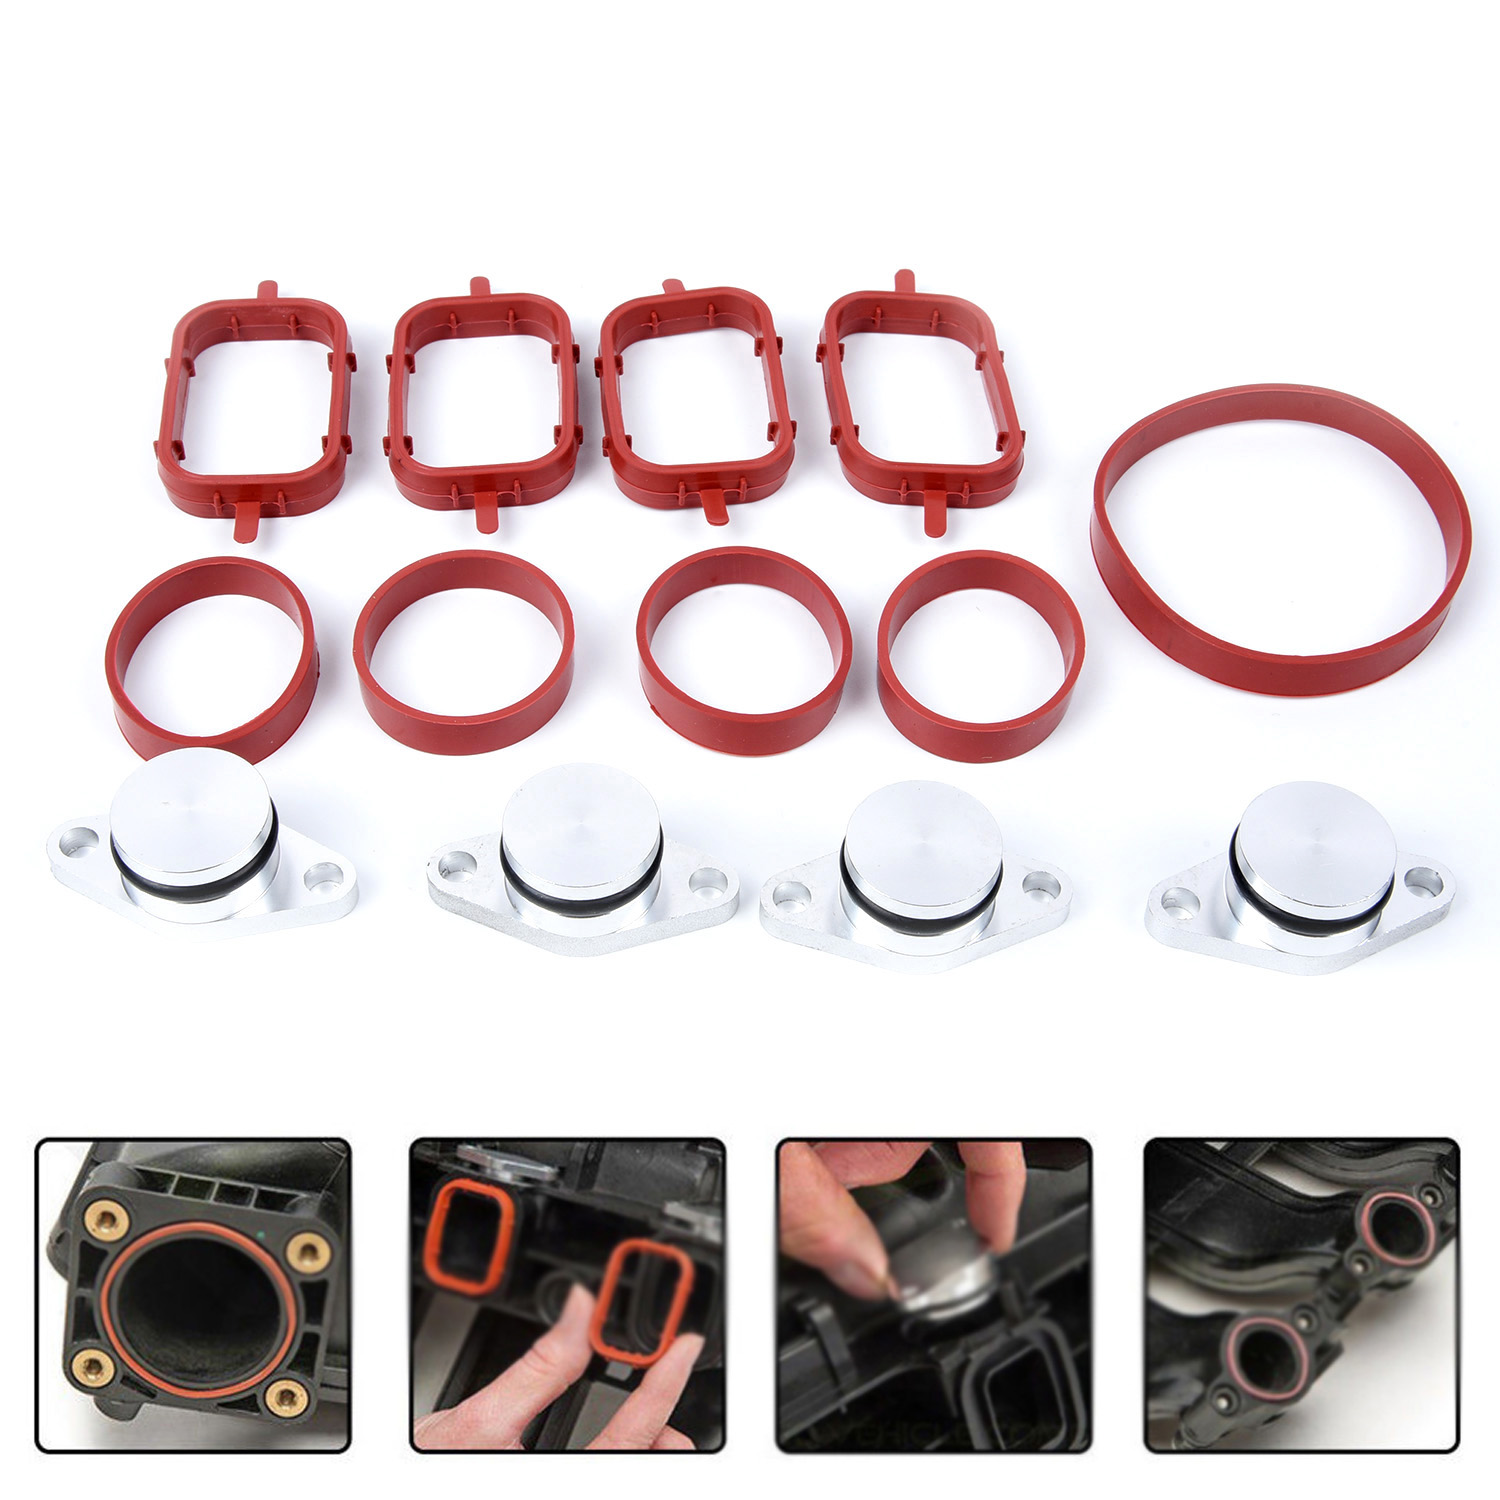 For BMW M47 E46 330d 22mm Diesel Swirl Flap Blanks Bungs Gaskets O Rings Replace